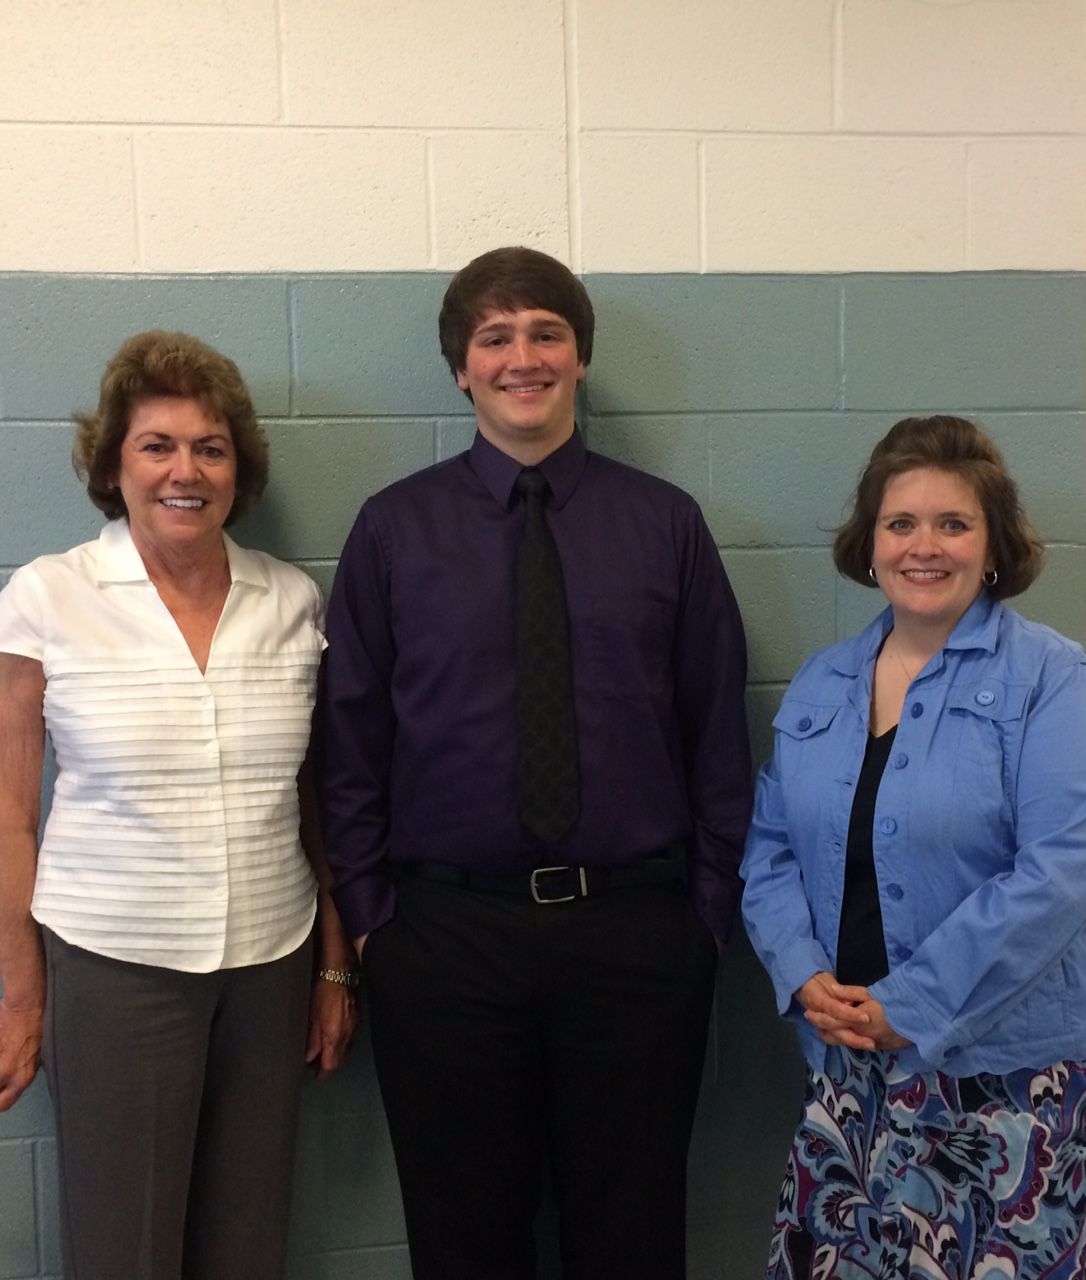 Watauga High School Senior Tyler Price poses for a photo with Billie Howell and Candis Walker.